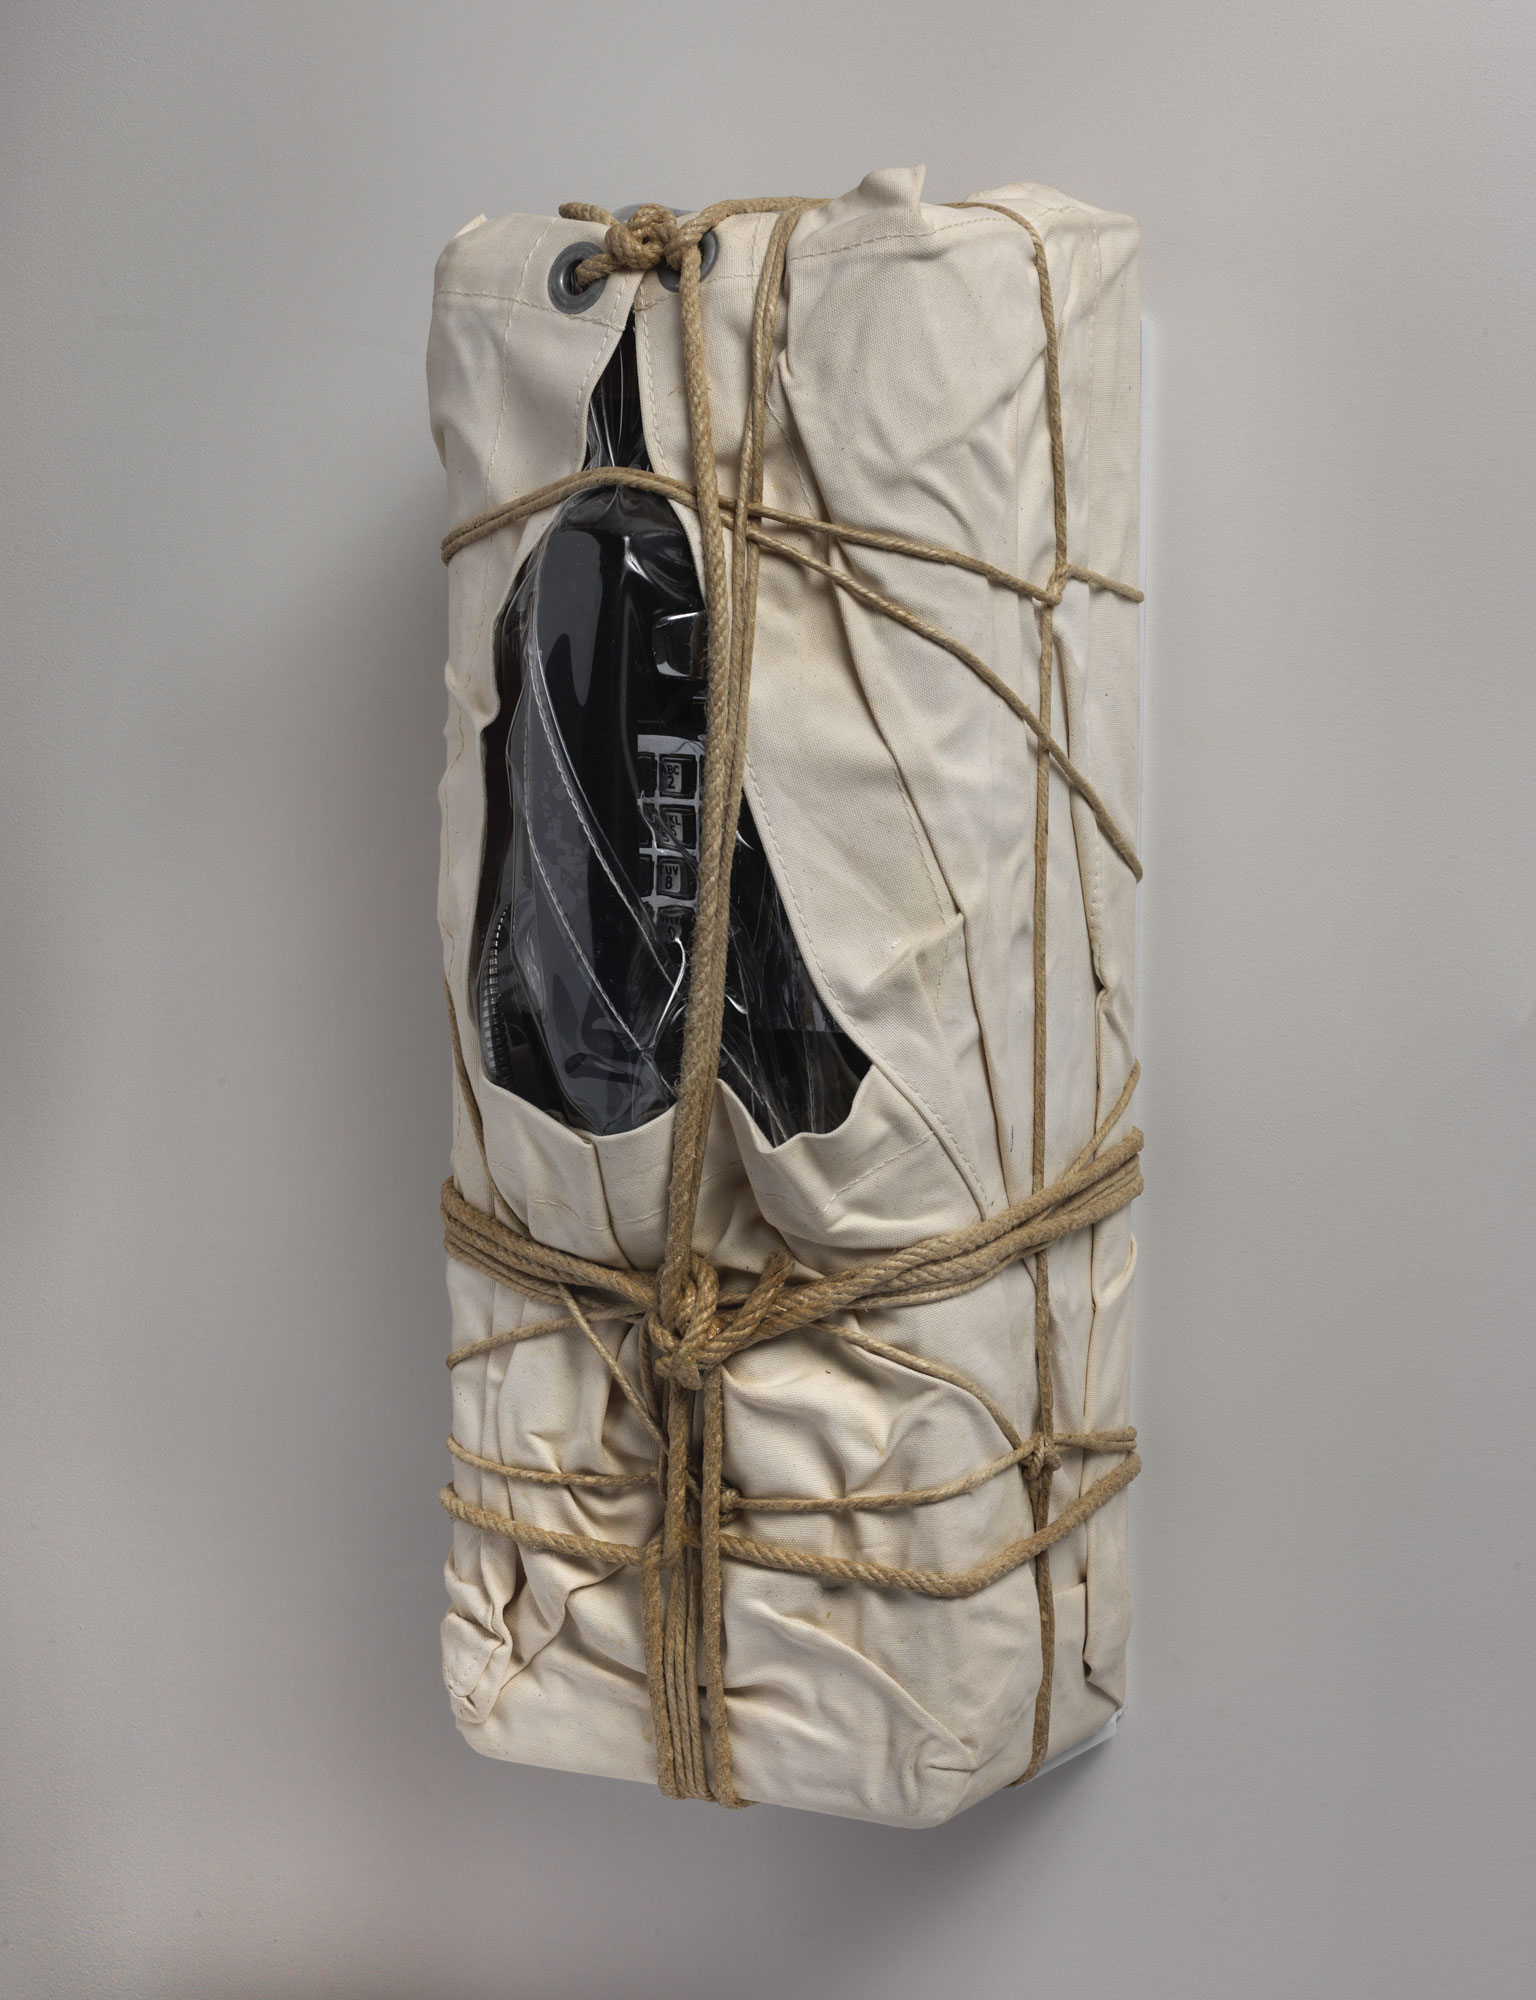 An alternate side view of a payphone wrapped in sackcloth with rope and twine.